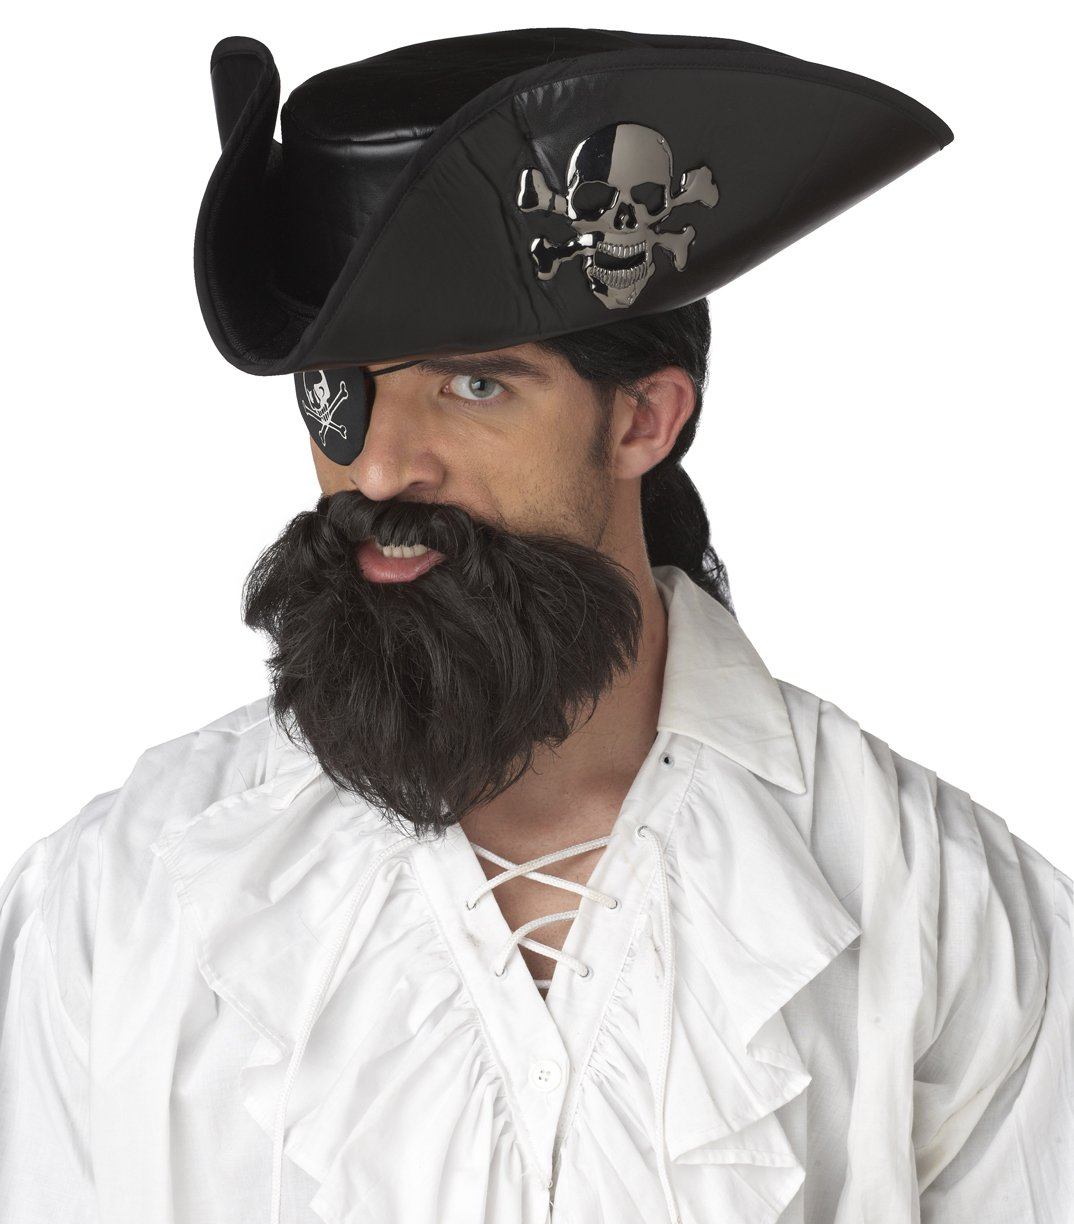 Pirate Captain Costume Beard and Moustaches #70011